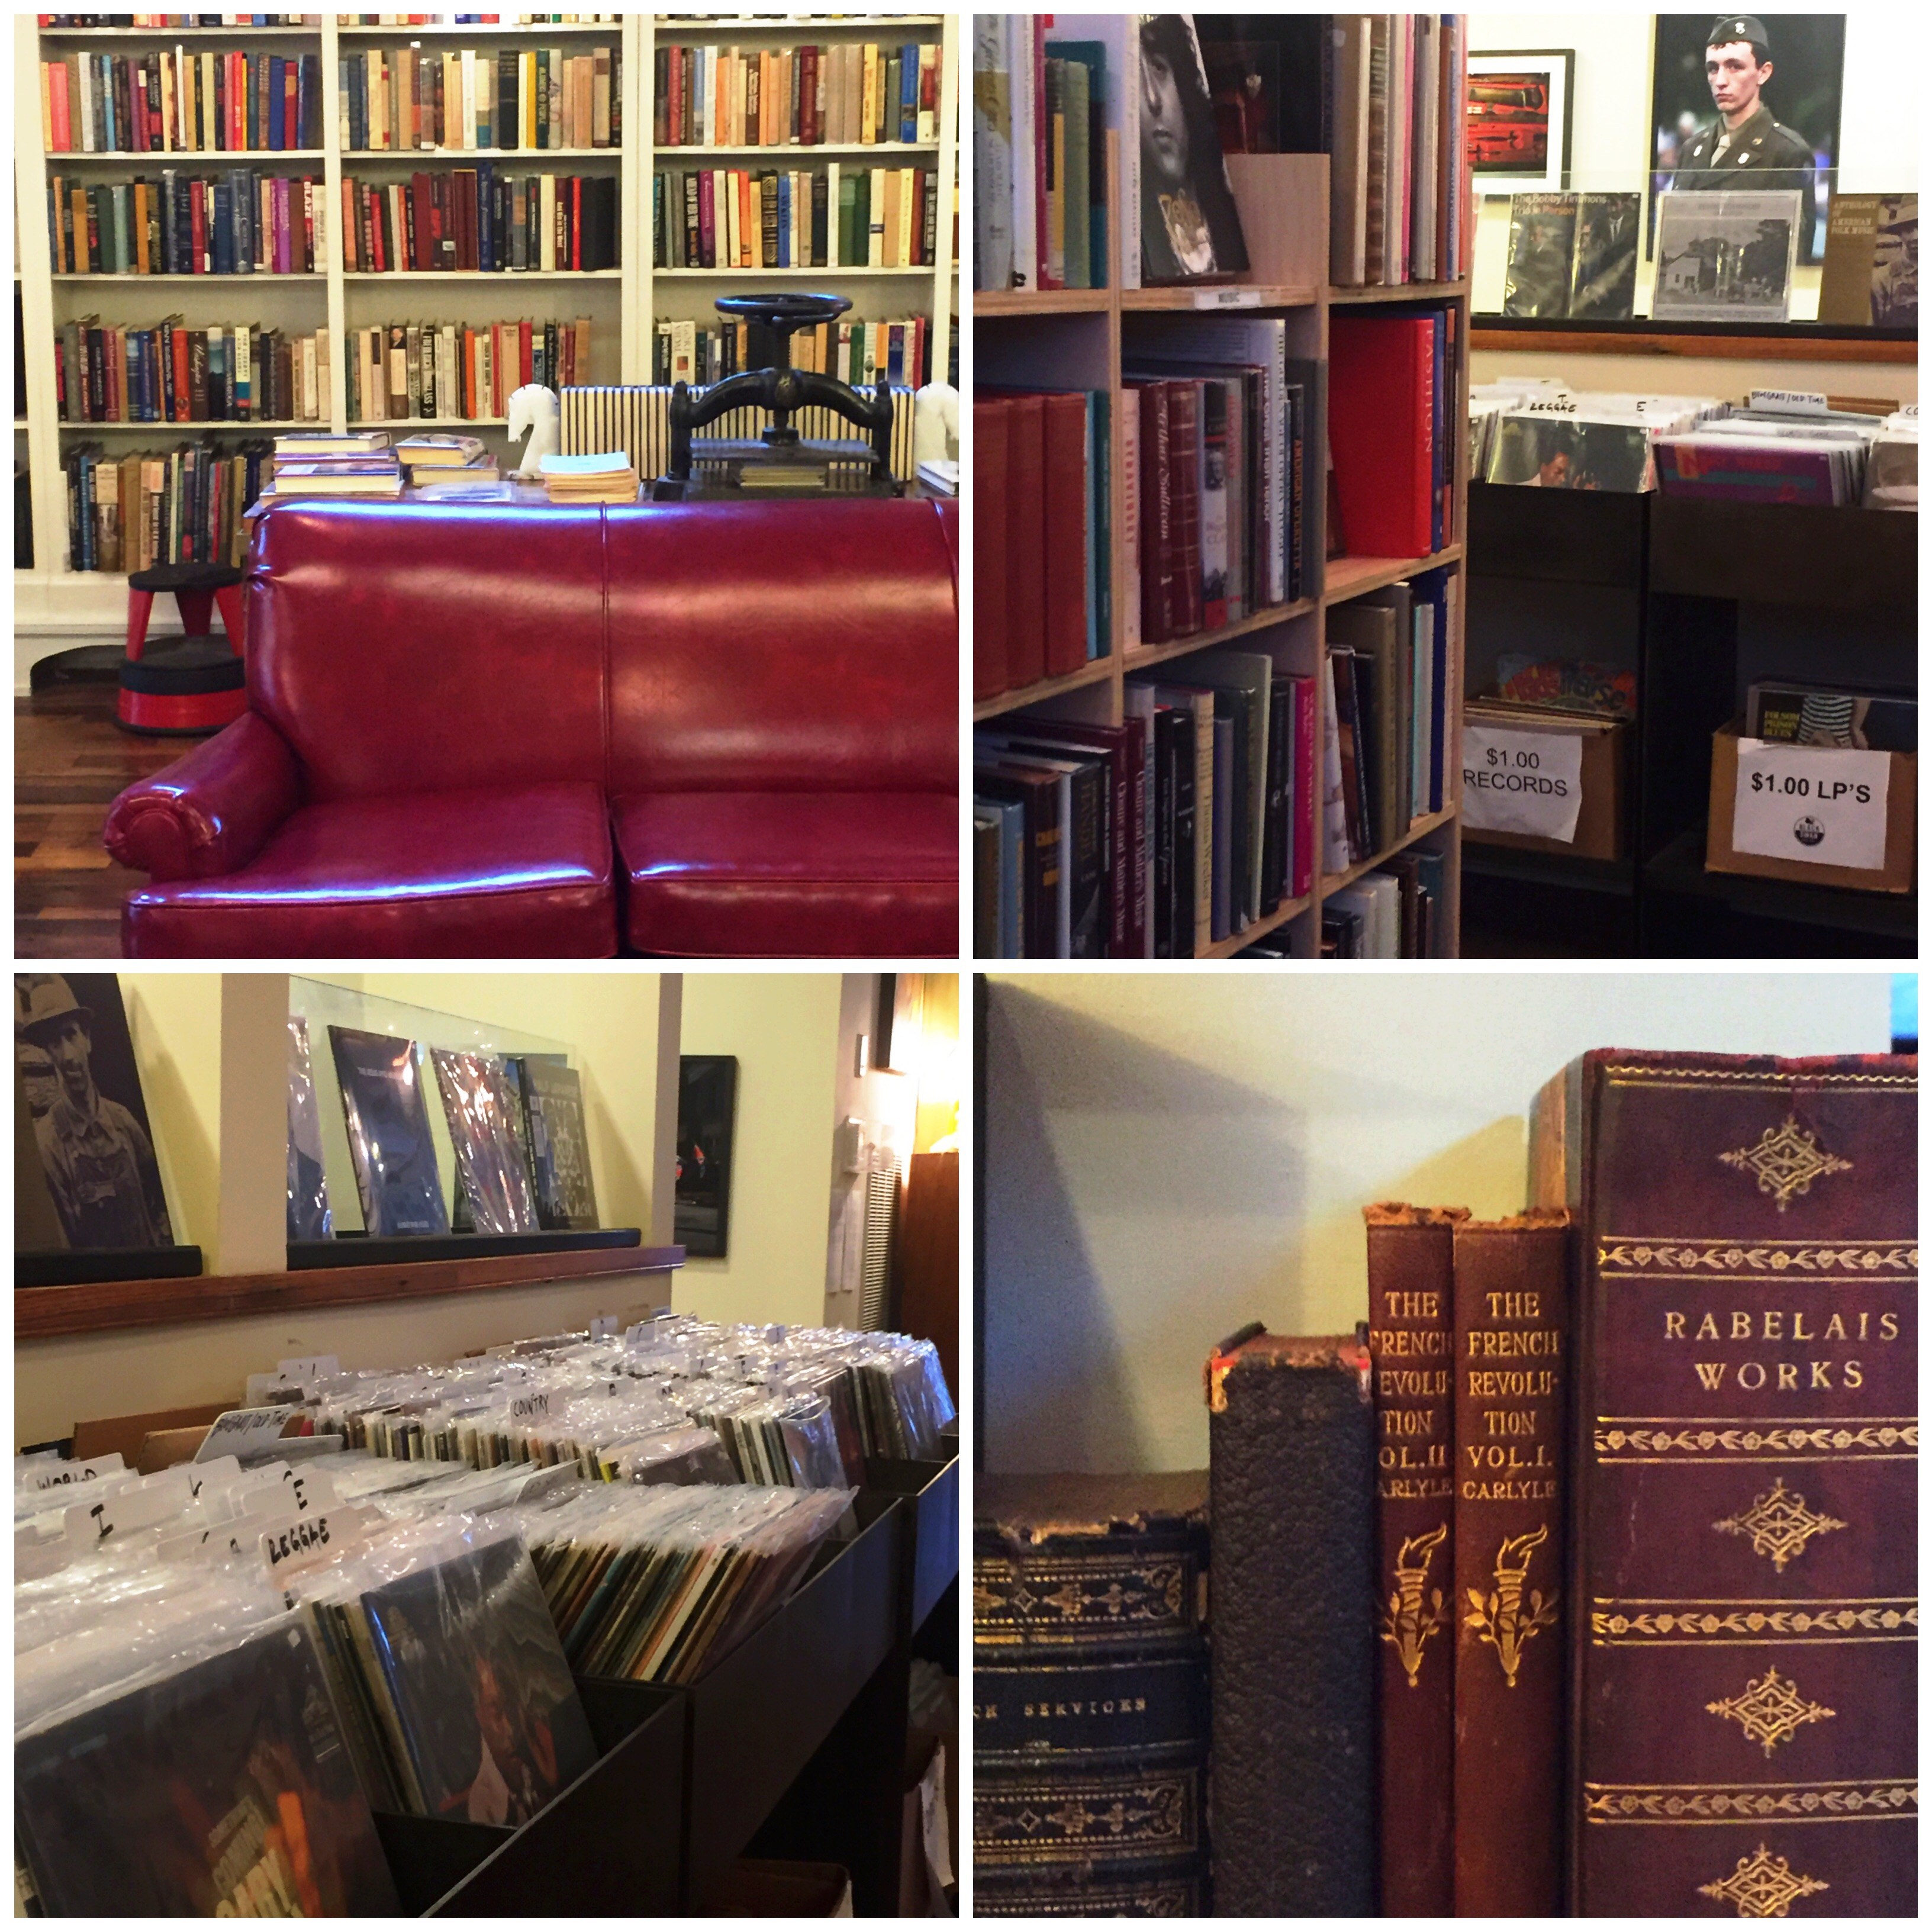 From upper left   Cozy up on the sofa, an aisle of musical biographies, great vinyl selection, rare books